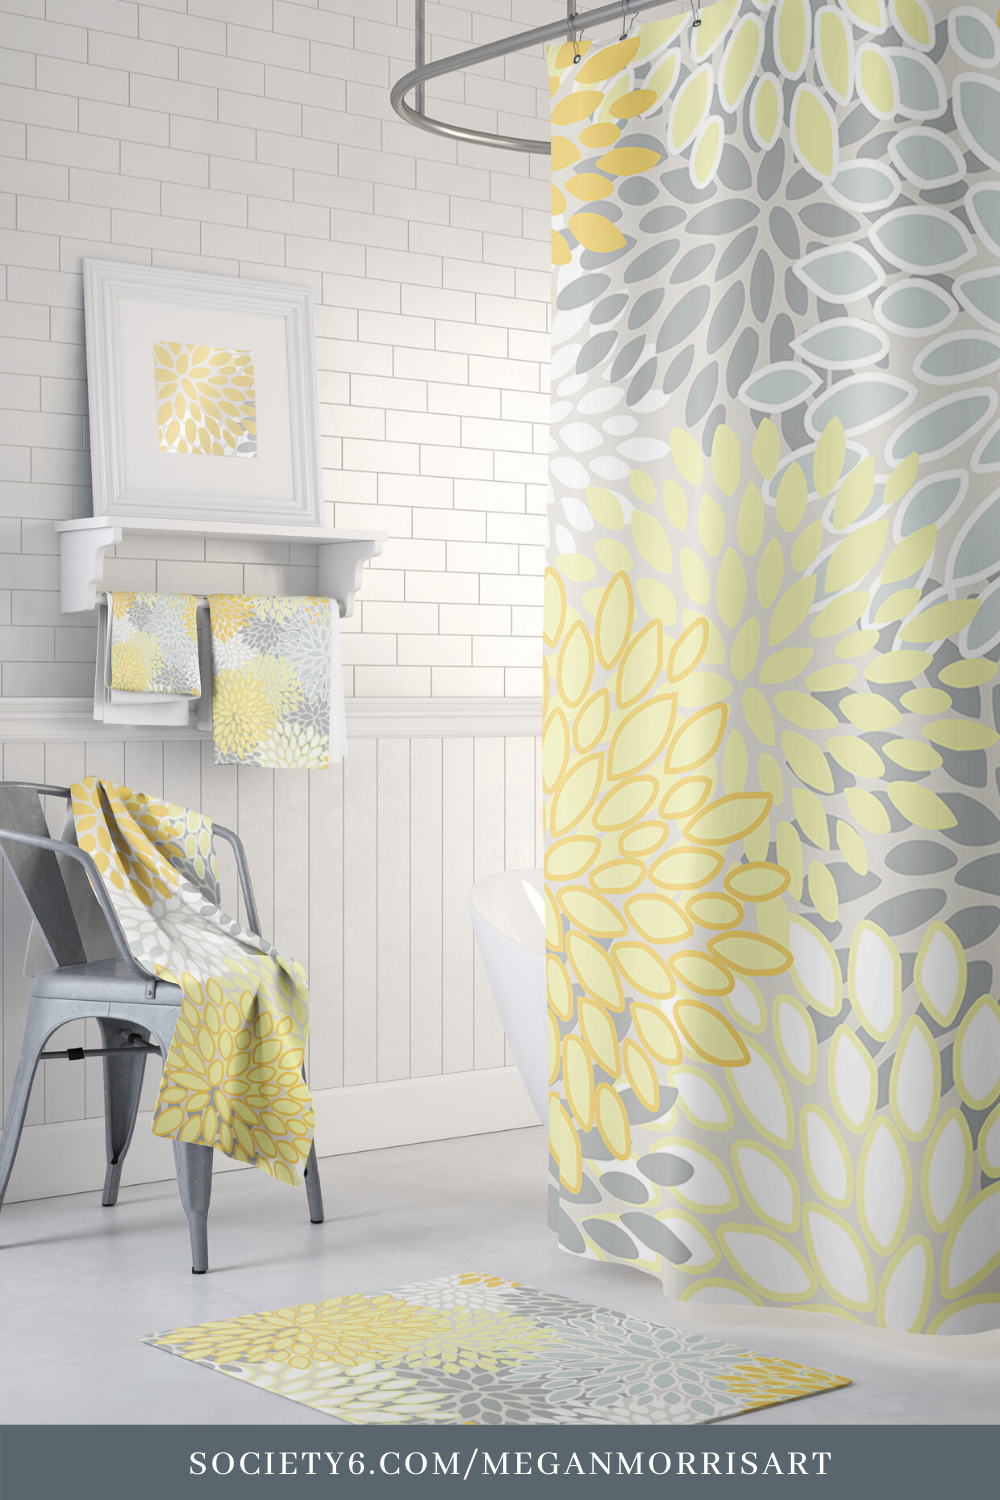 Bathroom Sets Shower Curtains Rugs And Towels Yellow And Gray Bathroom Accessories In 2020 Gray Bathroom Decor Yellow Shower Curtains Yellow Grey Bathroom